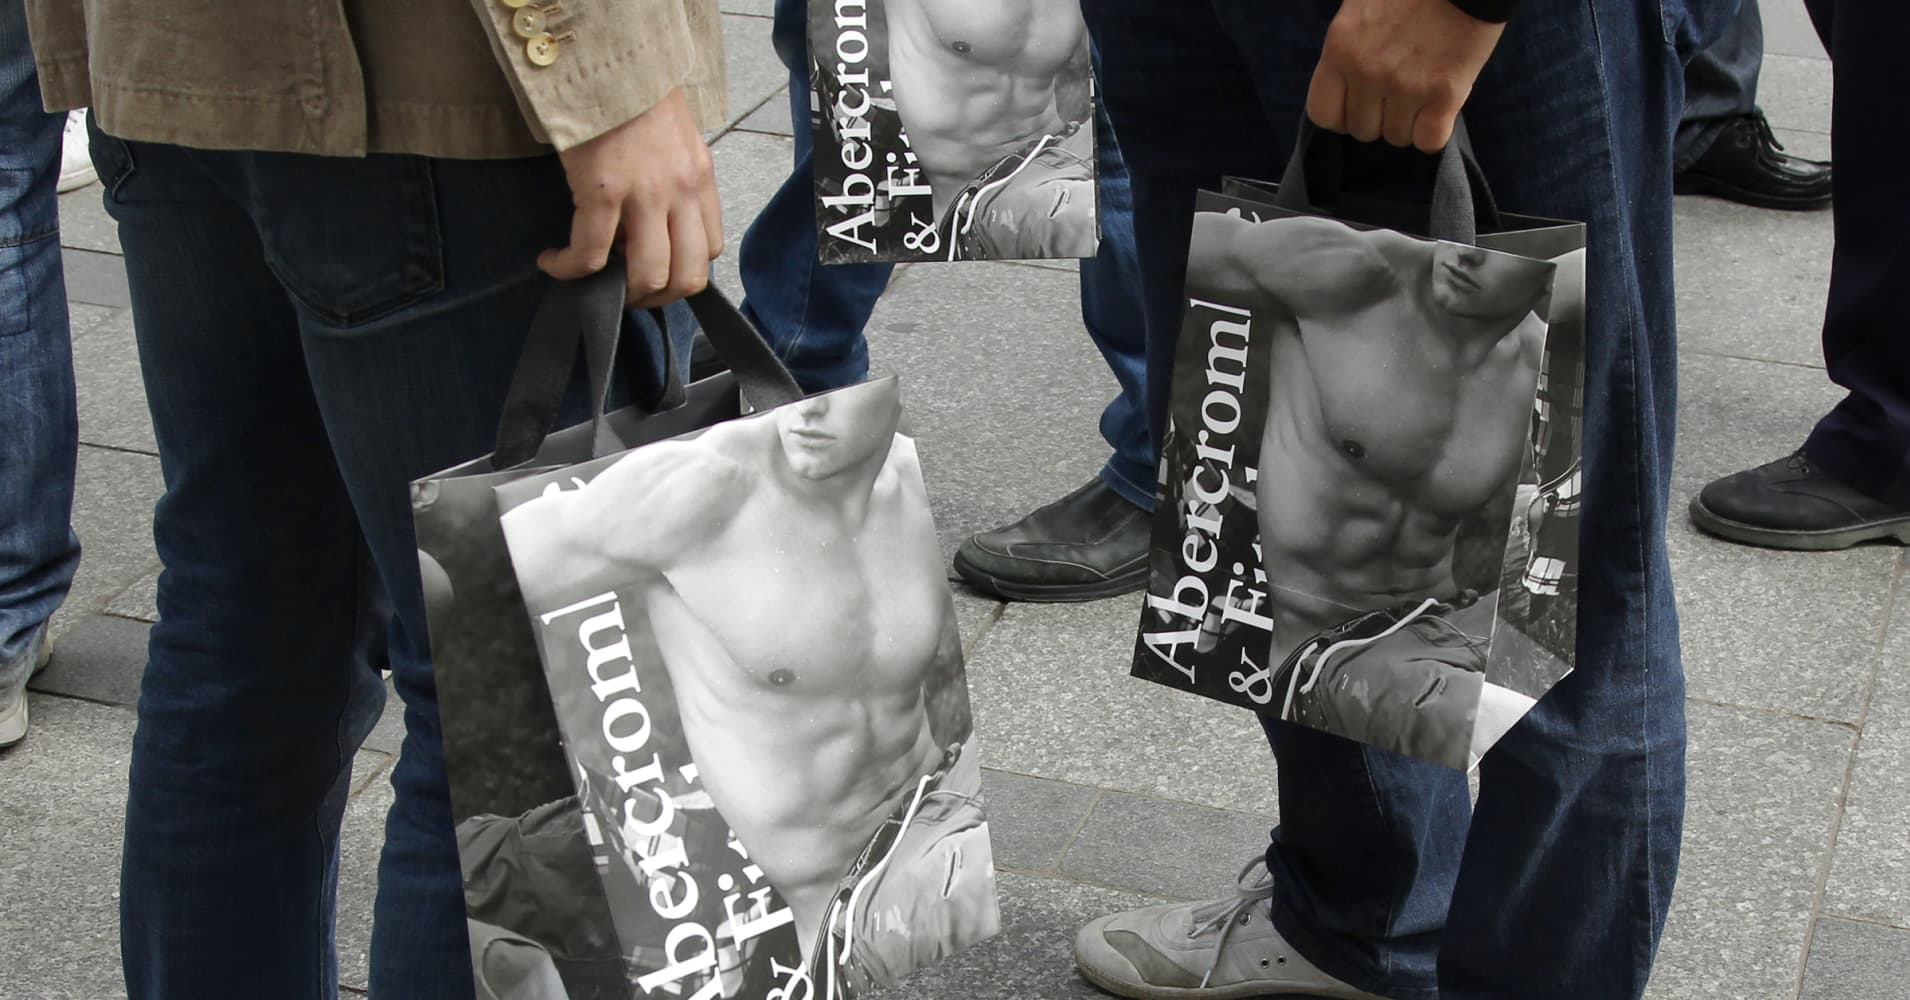 Traders see further decline ahead for Abercrombie & Fitch